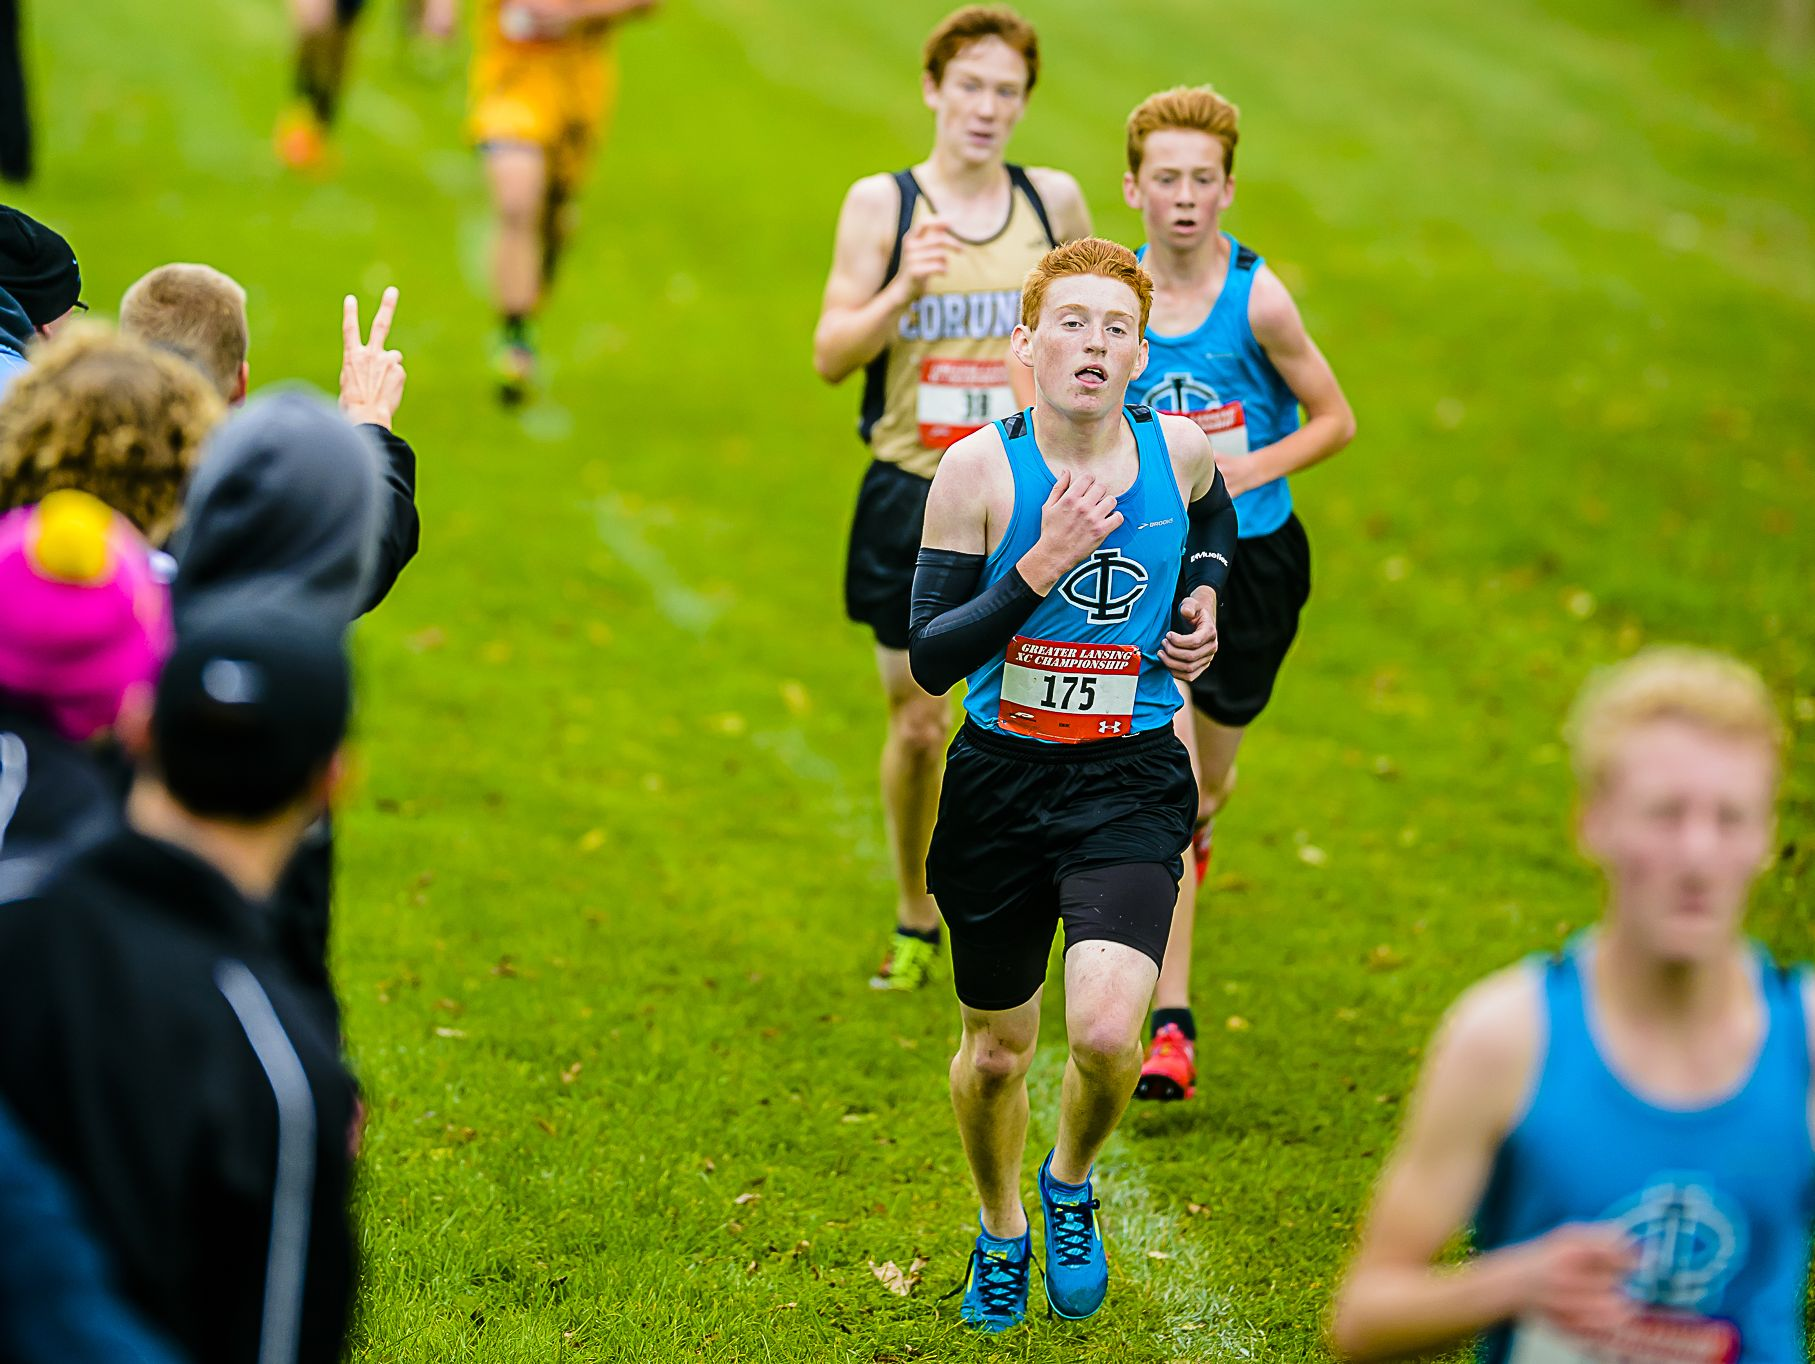 Eric Warriner ,175, of Lansing Catholic runs during the Greater Lansing Cross Country championships Saturday October 15, 2016 at Ledge Meadows Golf Course. Warriner and the Cougars will be trying to repeat as Division 3 state champions Saturday.